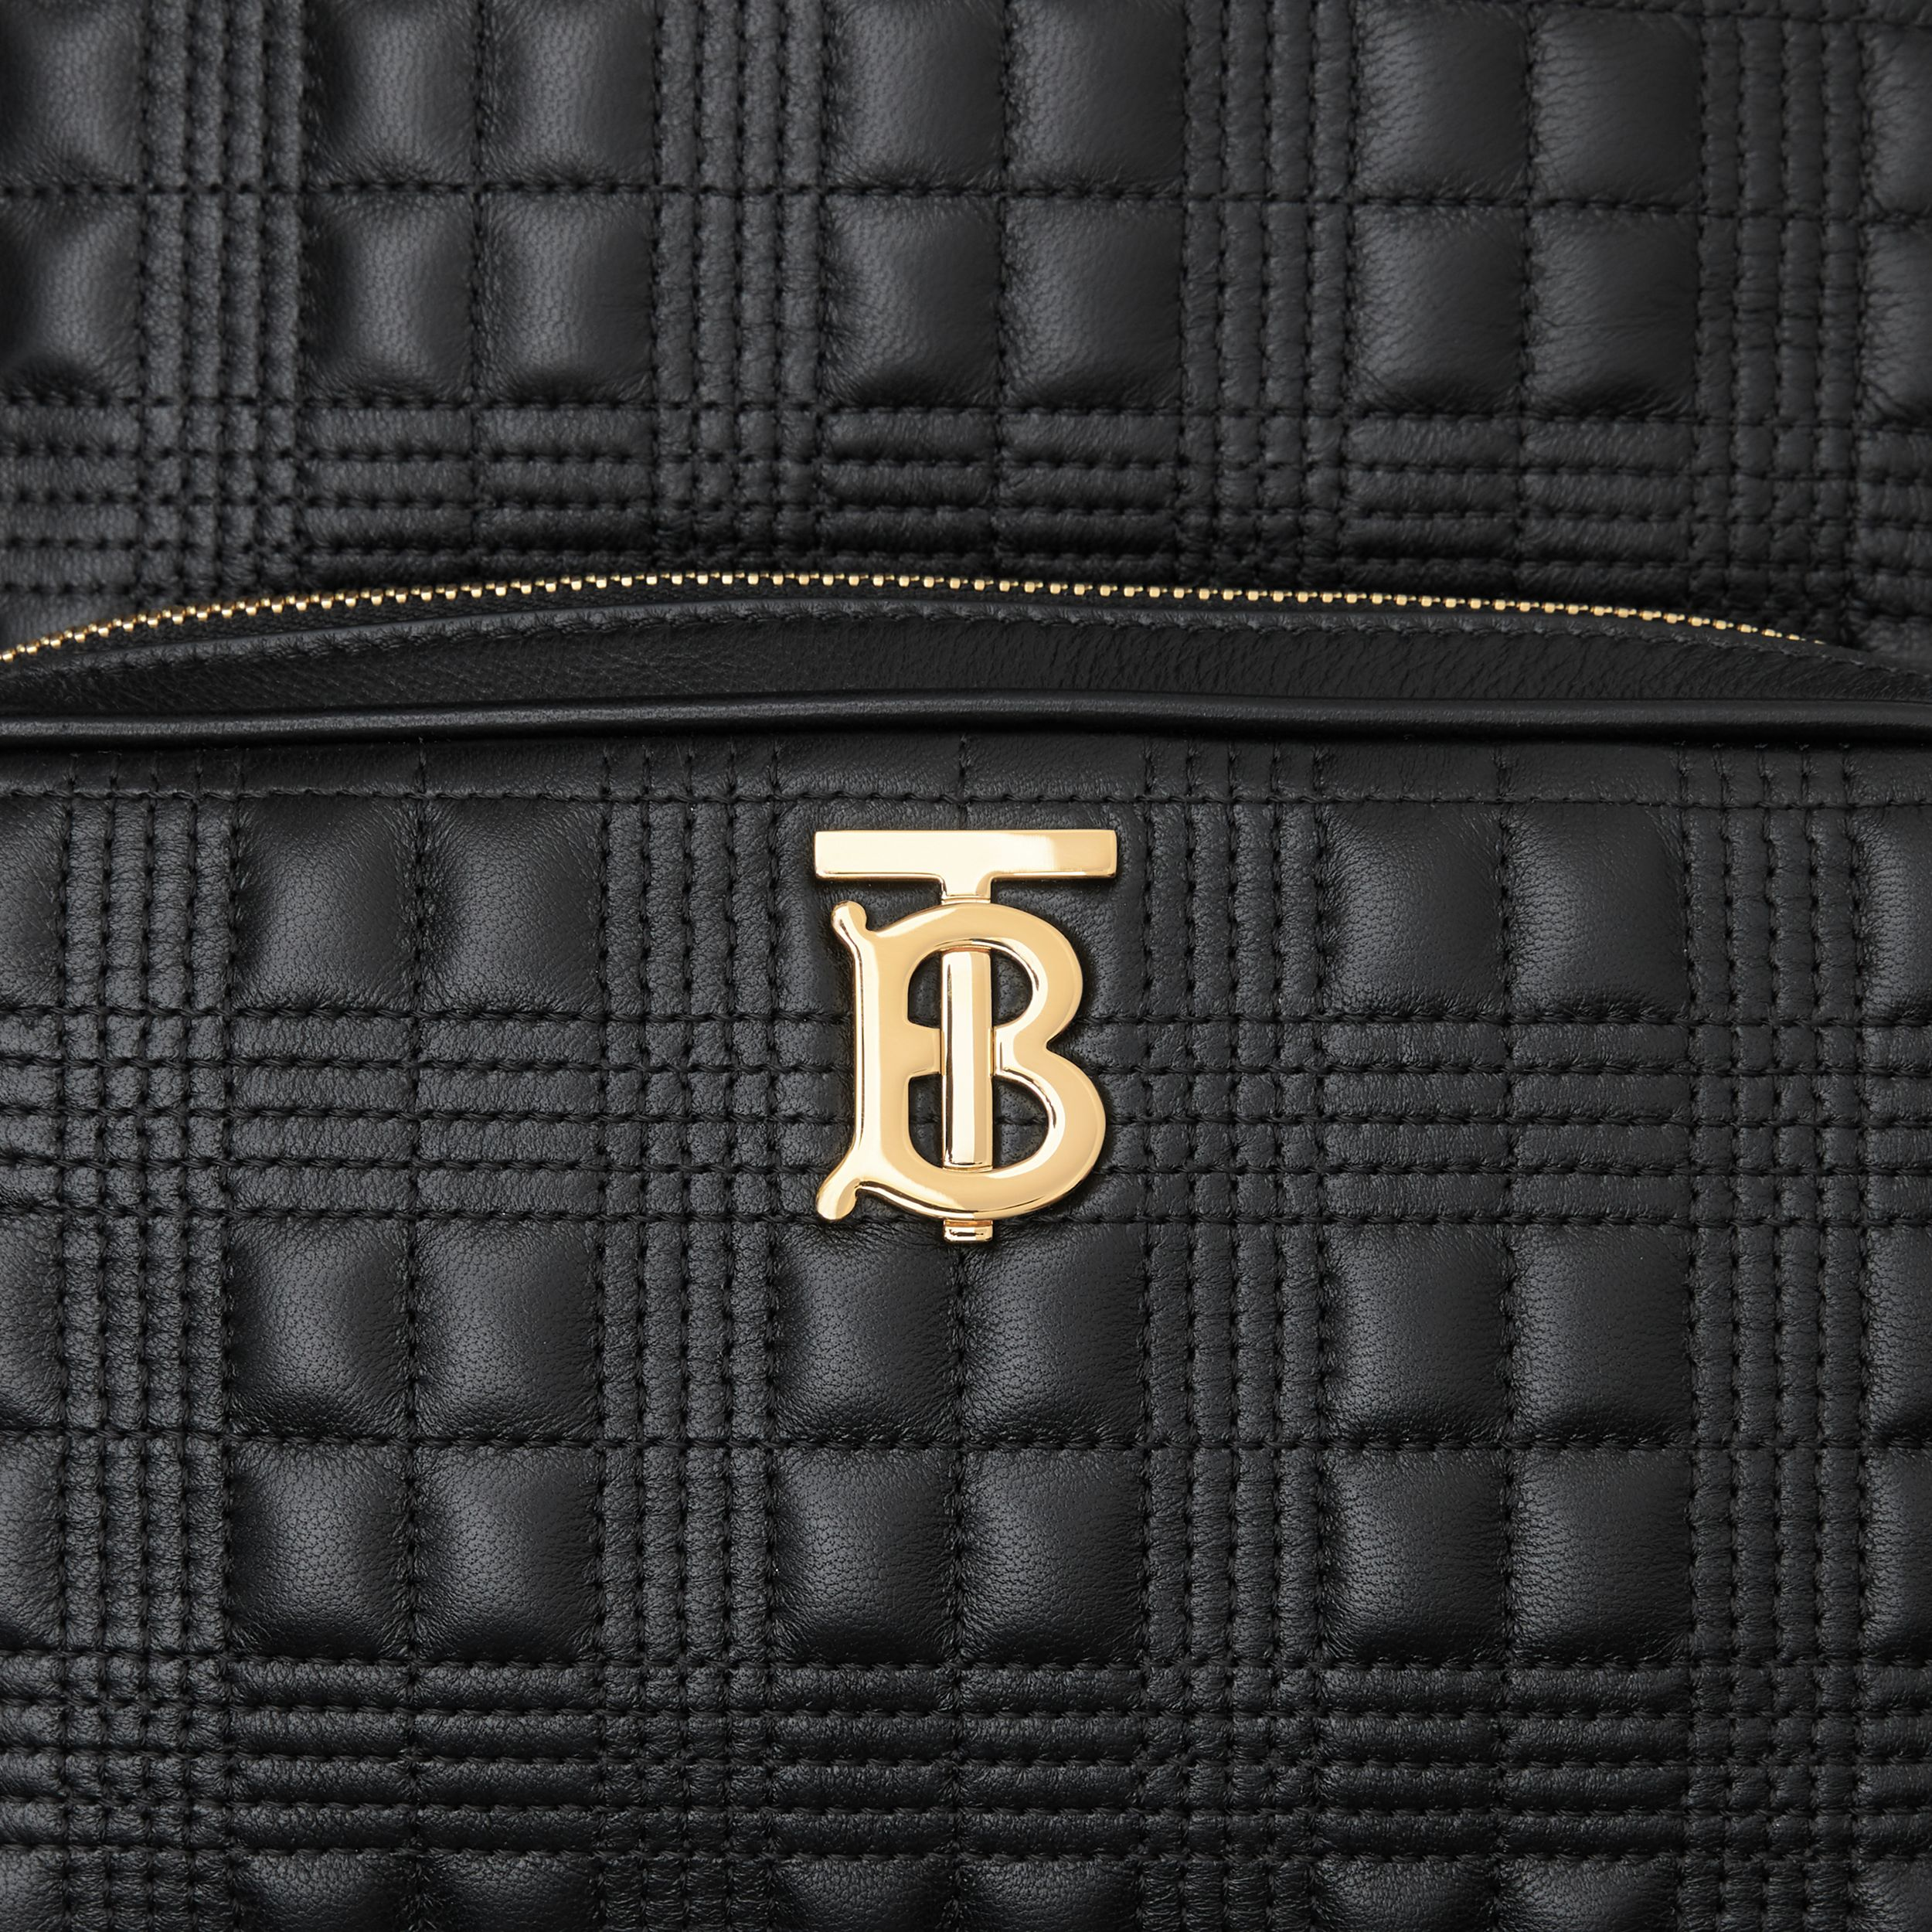 Quilted Check Lambskin Backpack in Black - Women | Burberry - 2